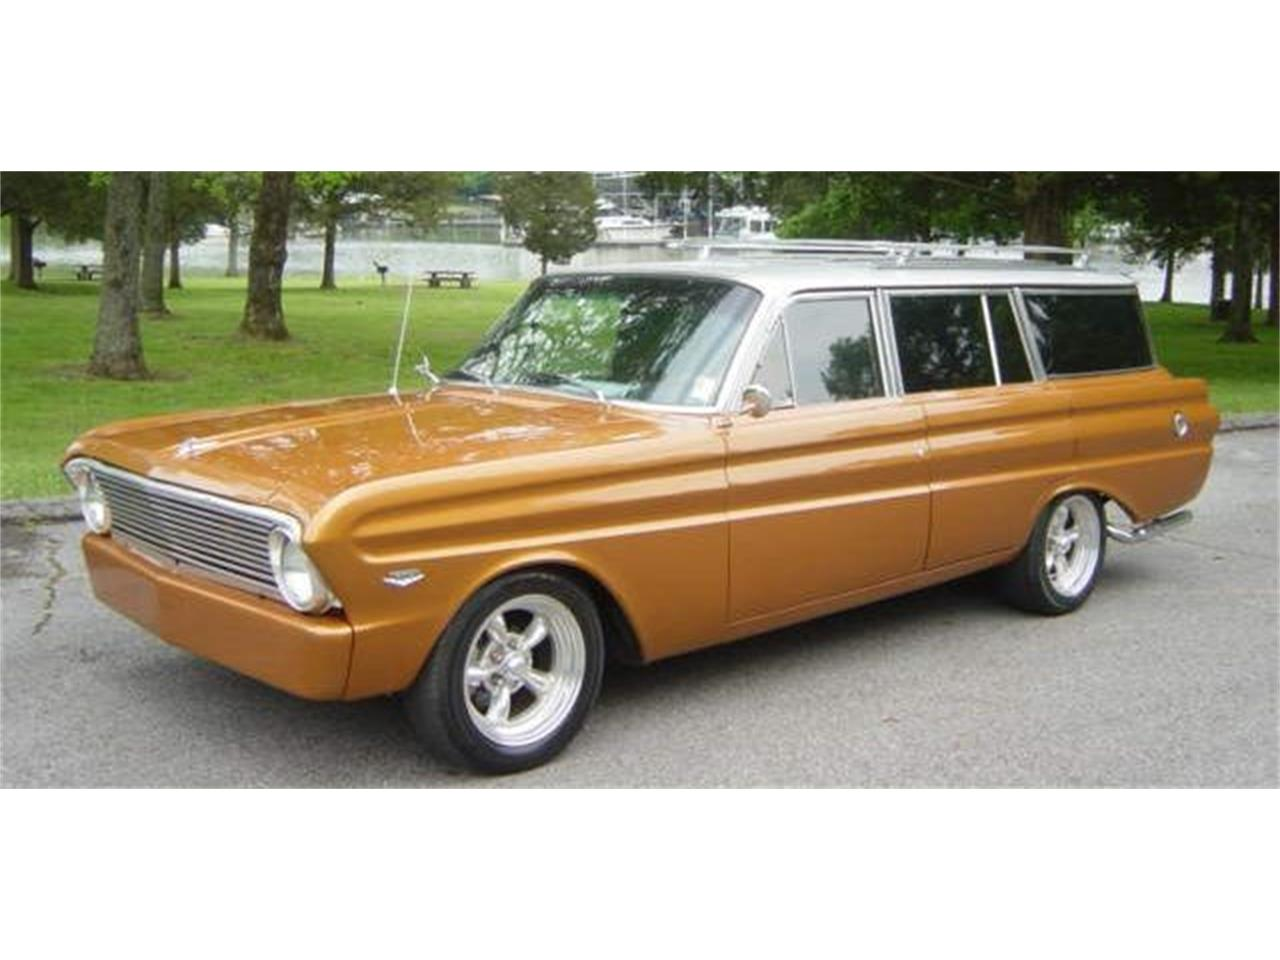 For Sale: 1964 Ford FALCON WAGON in Hendersonville, Tennessee